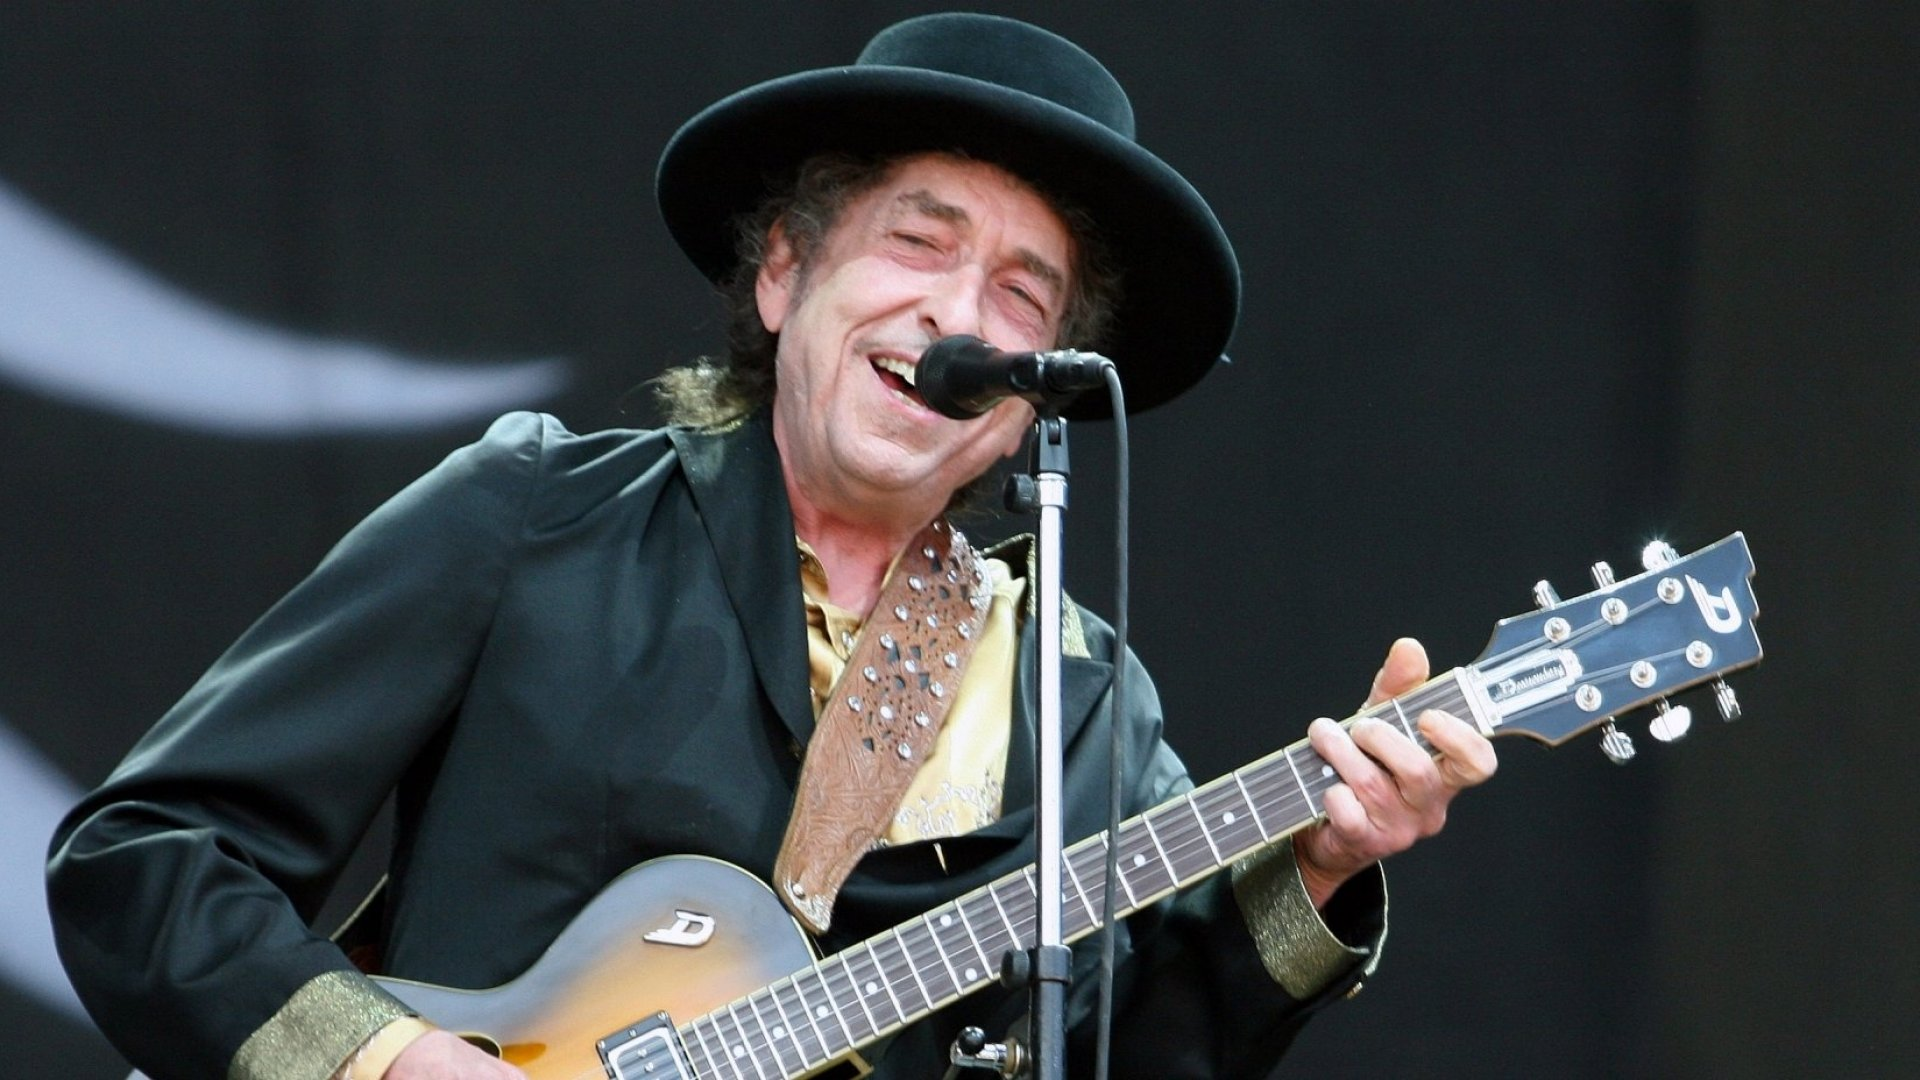 It Took Bob Dylan Less Than 30 Seconds to Teach a Remarkable Lesson in Emotional Intelligence